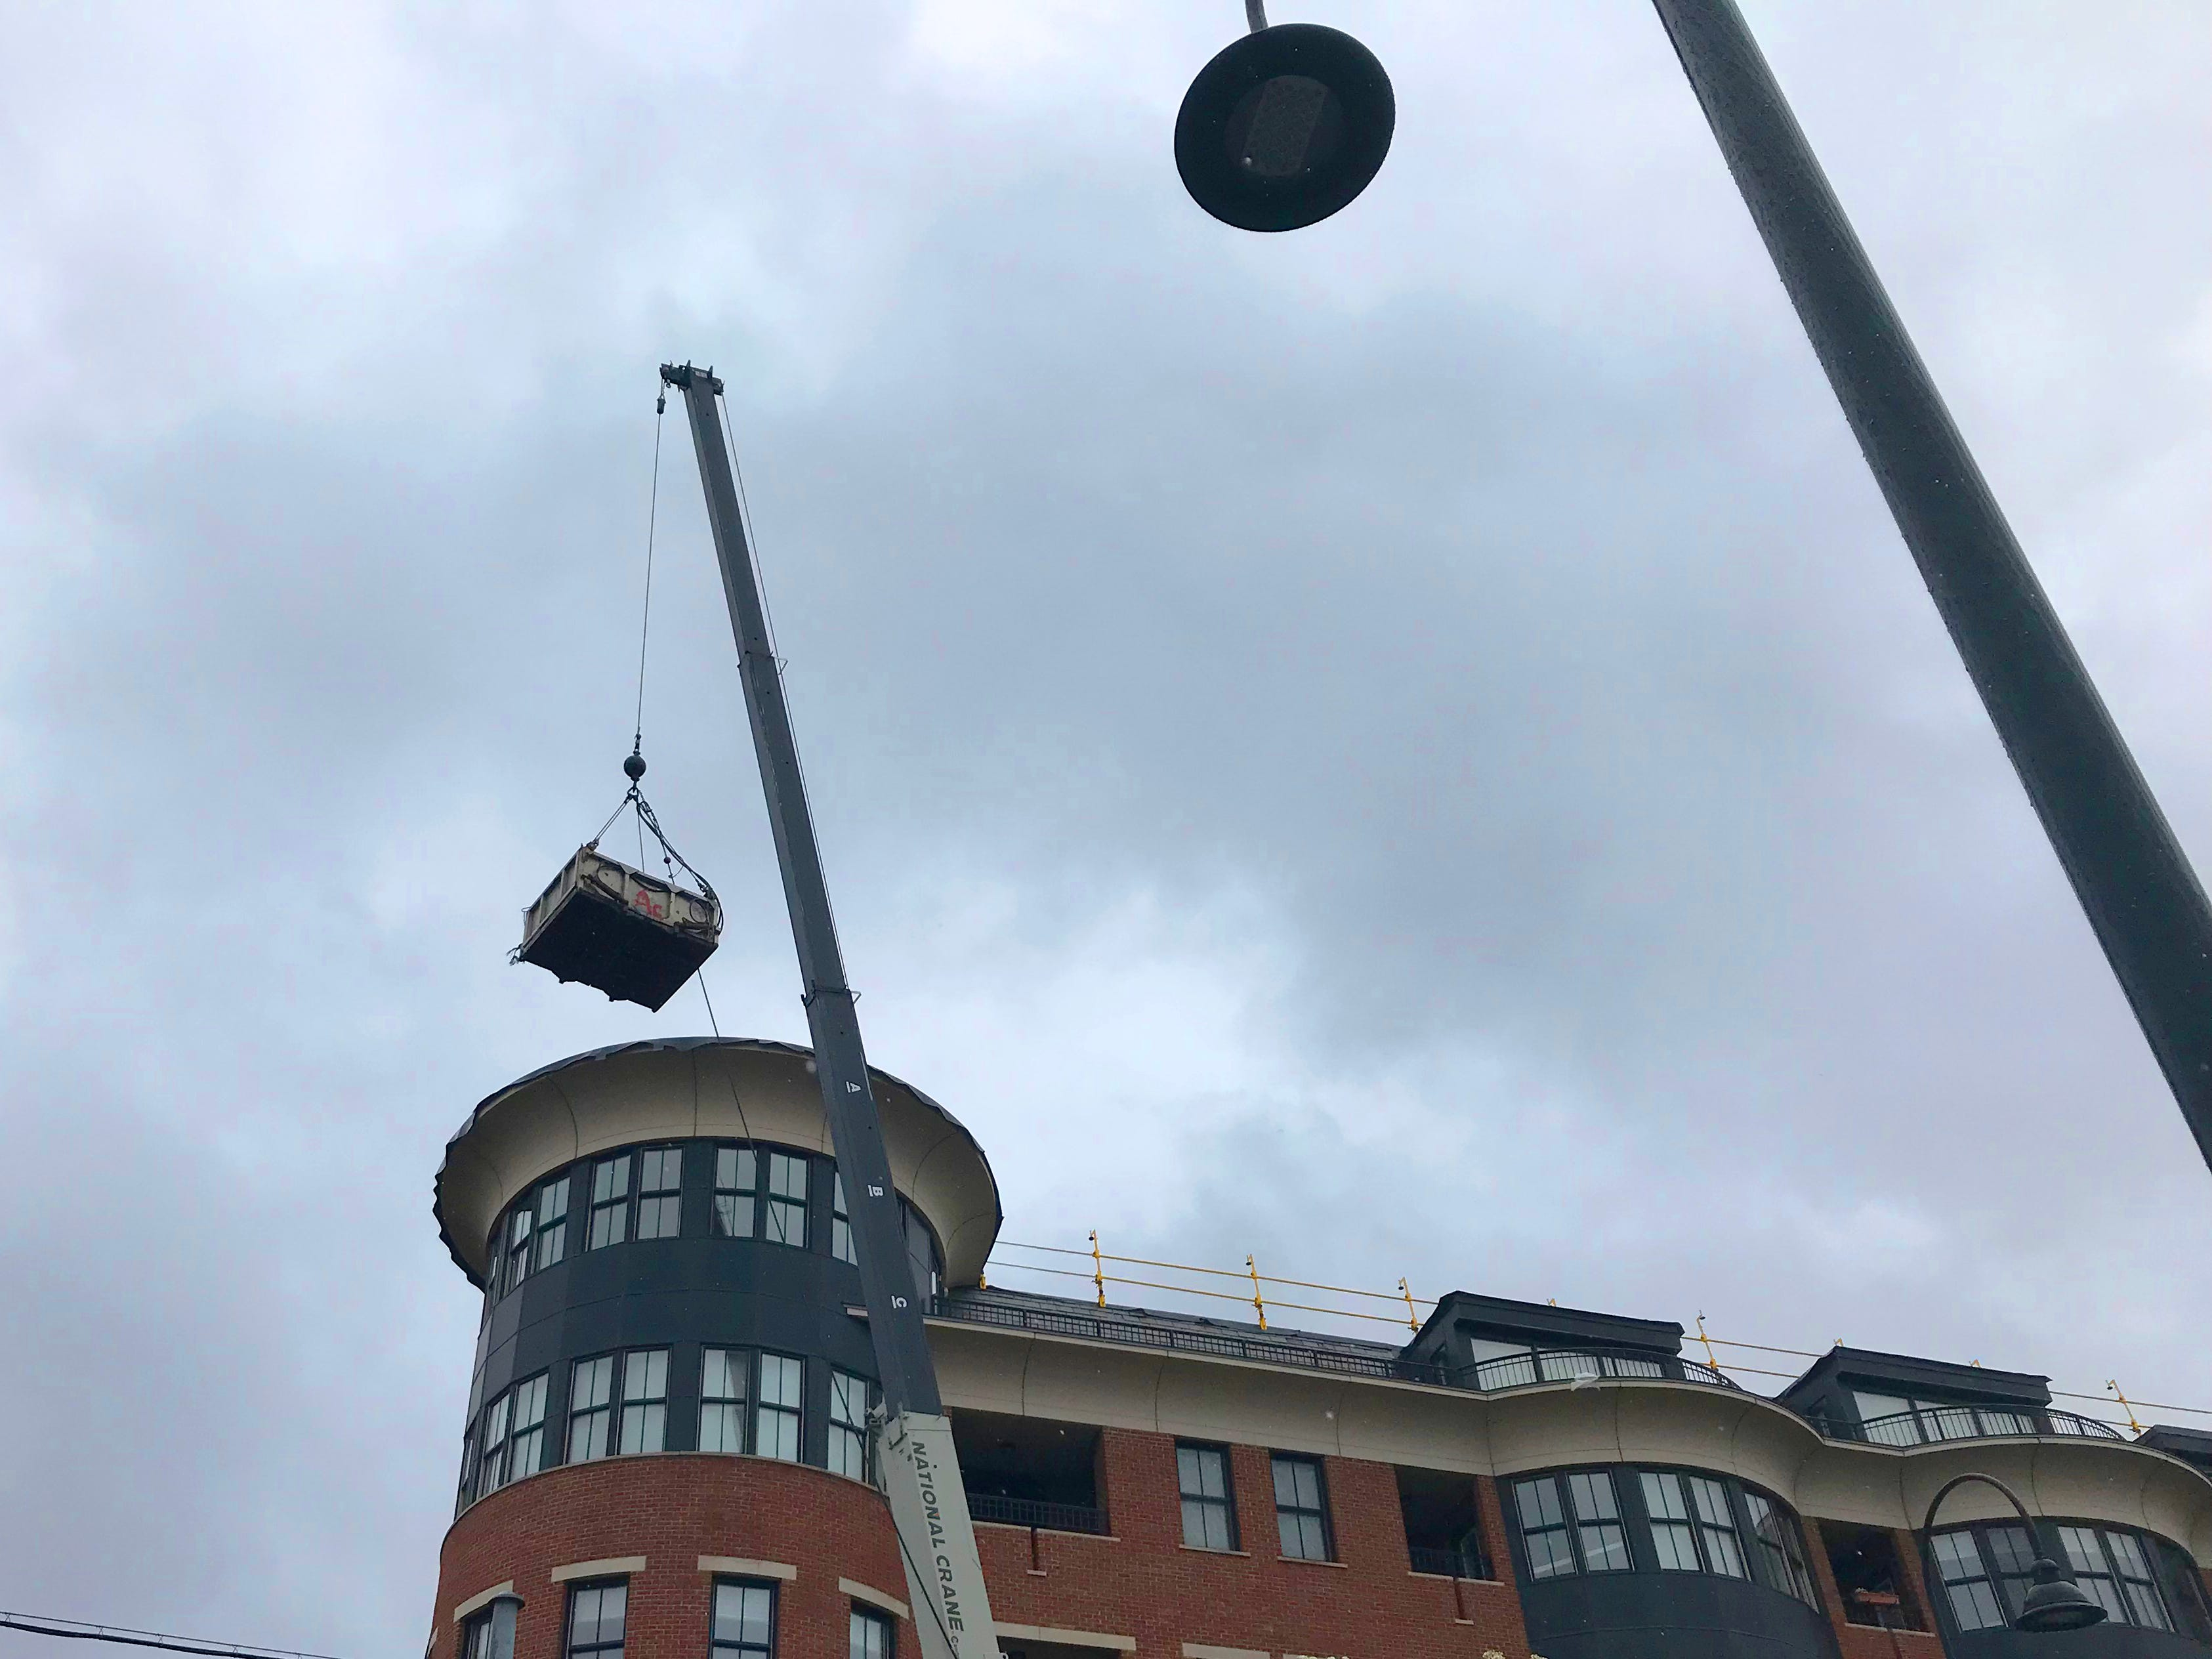 A crane operated by Williston-based A.C. Hathorne Roofing Contractor hauls construction debris down from a roof at Battery and College streets in Burlington on Tuesday, May 14, 2019.